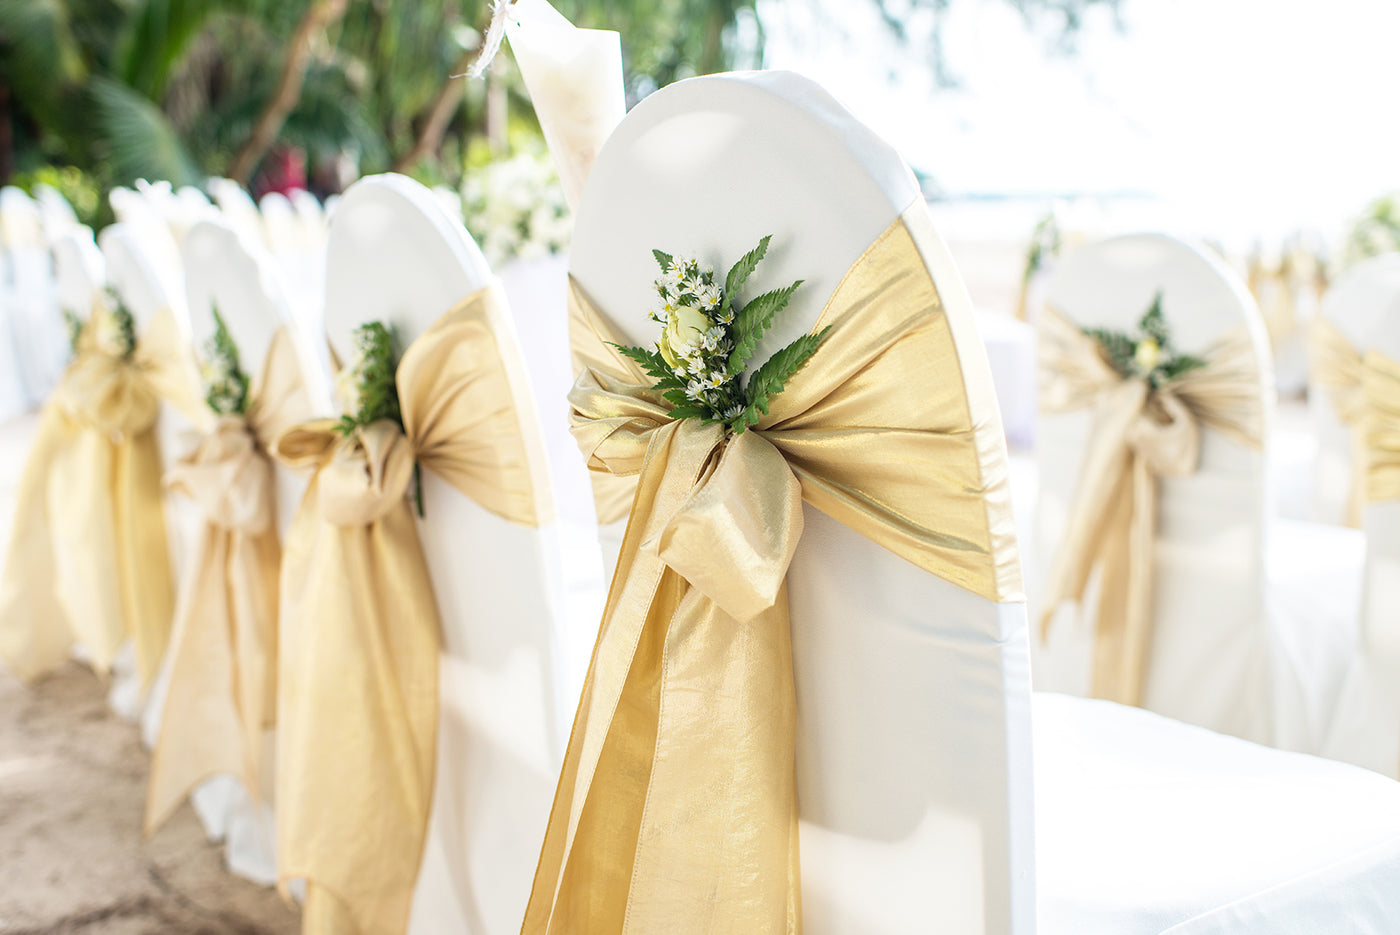 Wedding Chair Sashes & Bands